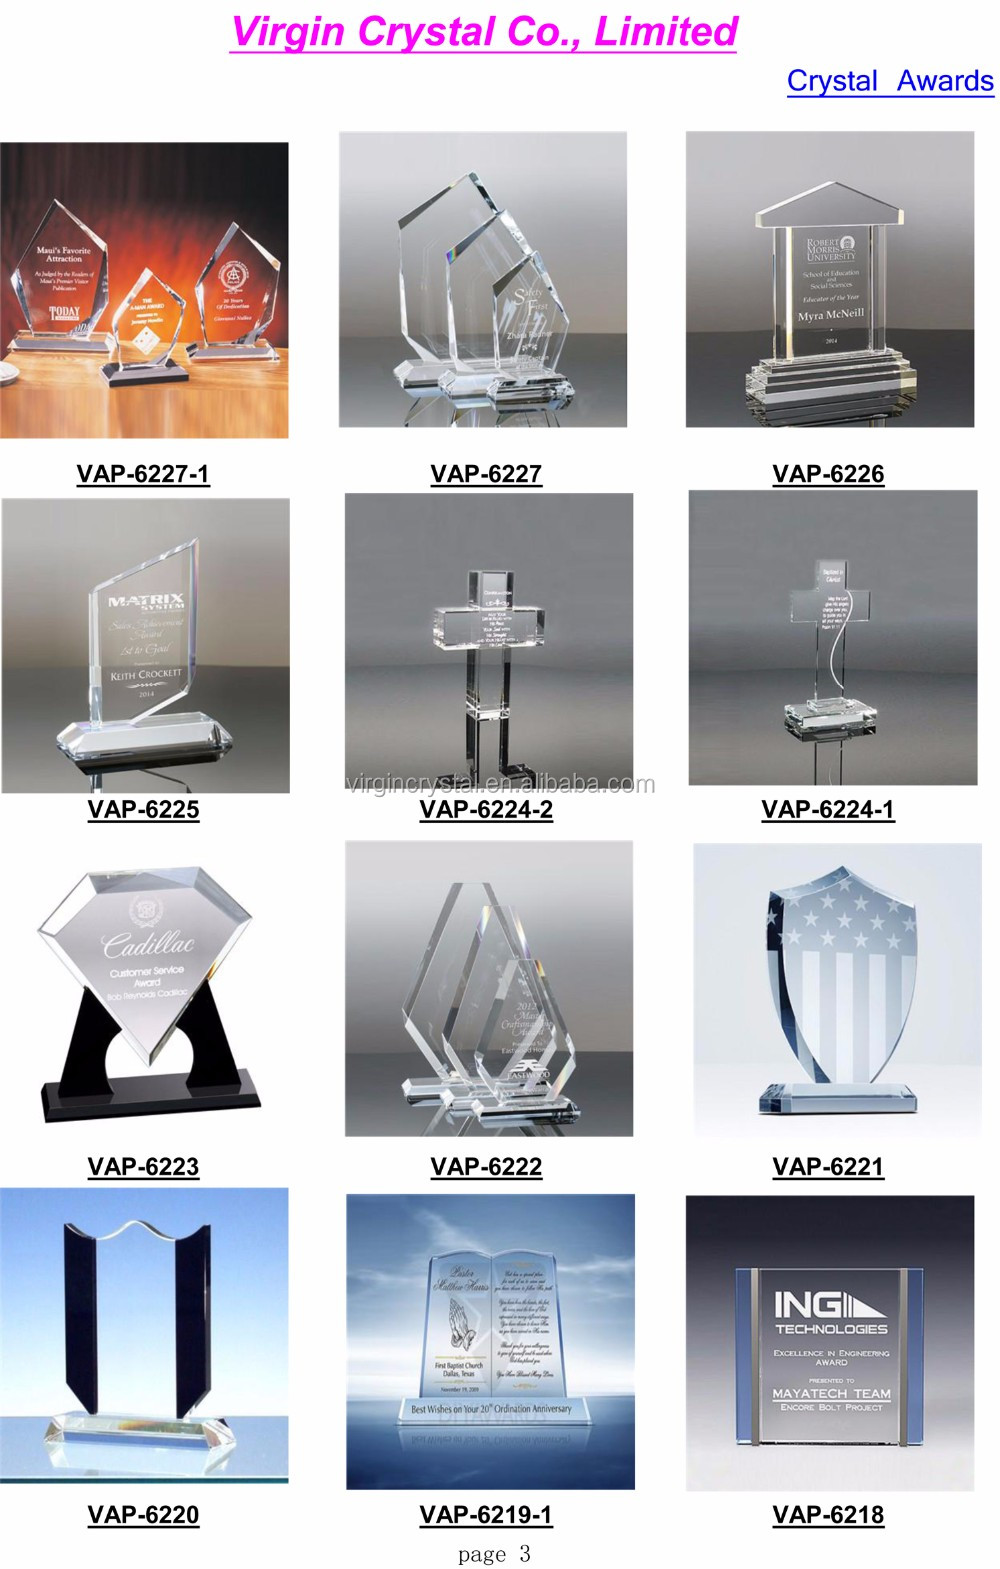 Fashion promotional crystal shield award trophy with company brand